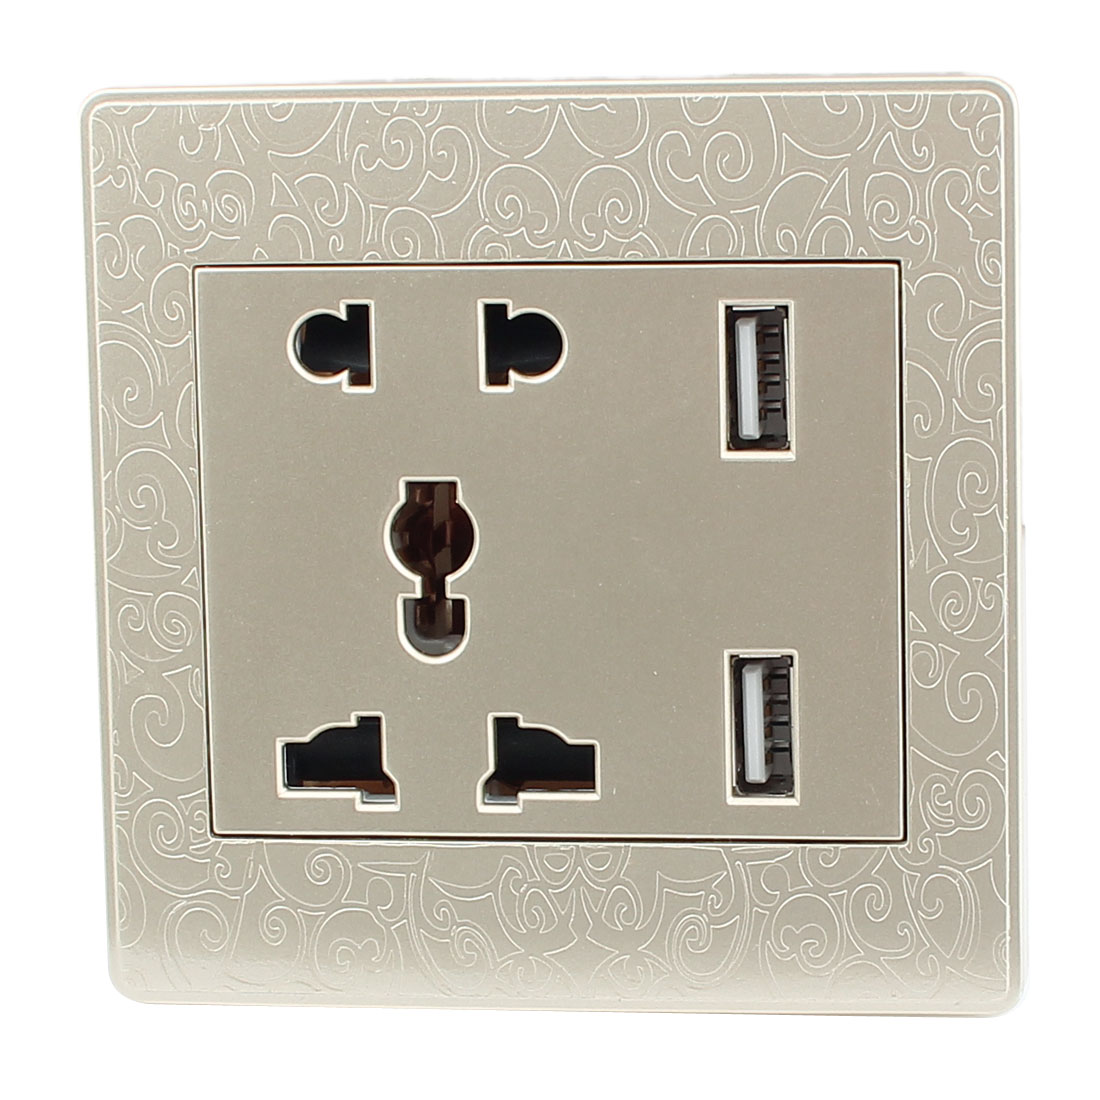 AC 110V-250V AU EU UK US Socket 2 USB Outlet Charging DC 5V 2100mA Mains Power Gold Tone